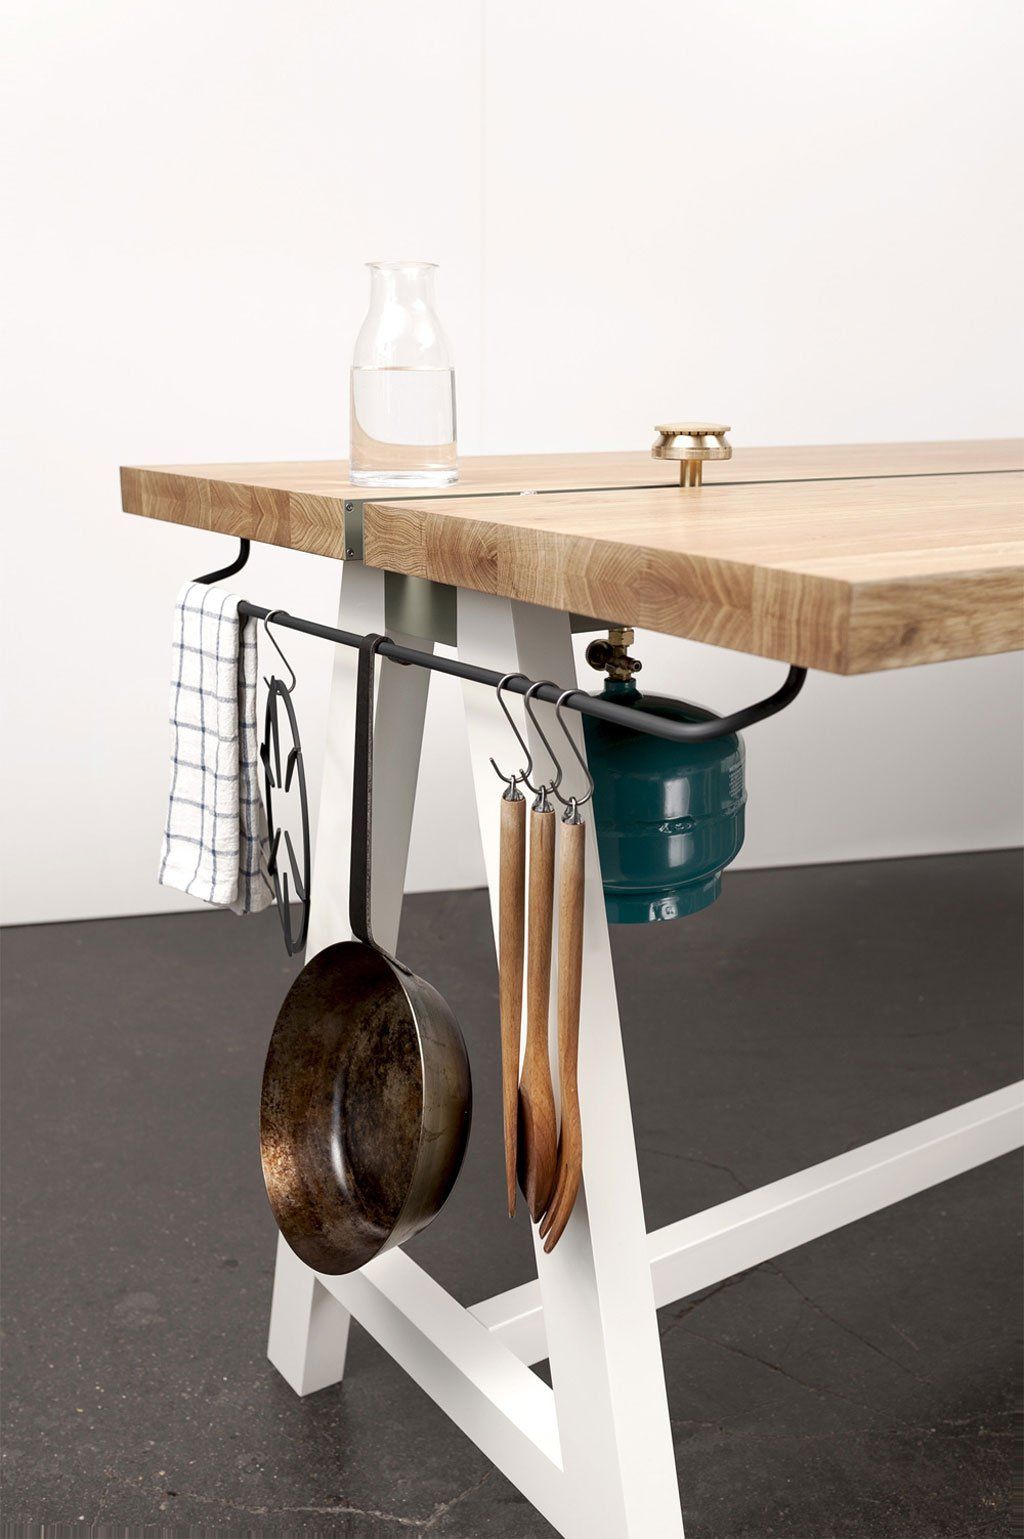 Cooking Table For a Minimalist Kitchen Experience